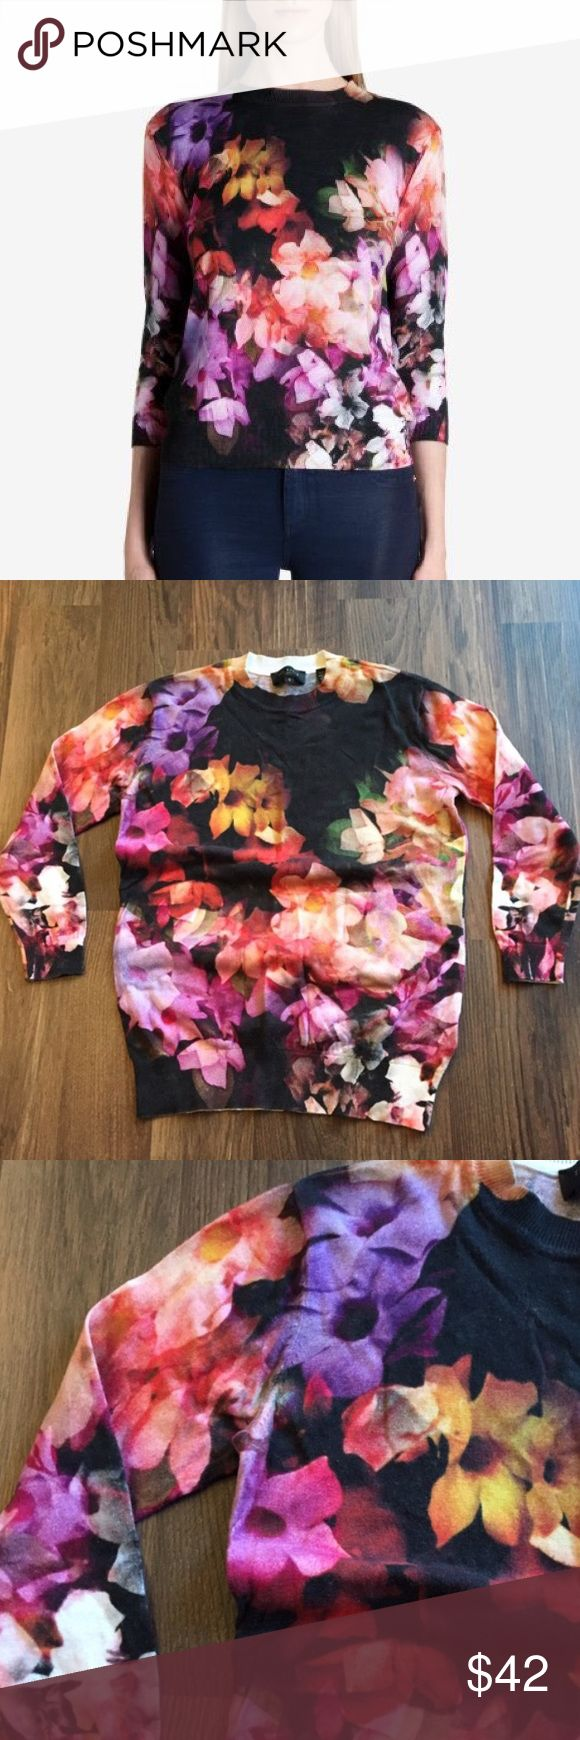 Ted Baker floral mid-sleeve Sweater Ted Baker floral mid-sleeve top/sweater. Perfect for showing off your watches and bracelets. Match this up with some casual jeans or dress it up with a skirt! Super cute and girly! Ted Baker Sweaters Crew & Scoop Necks